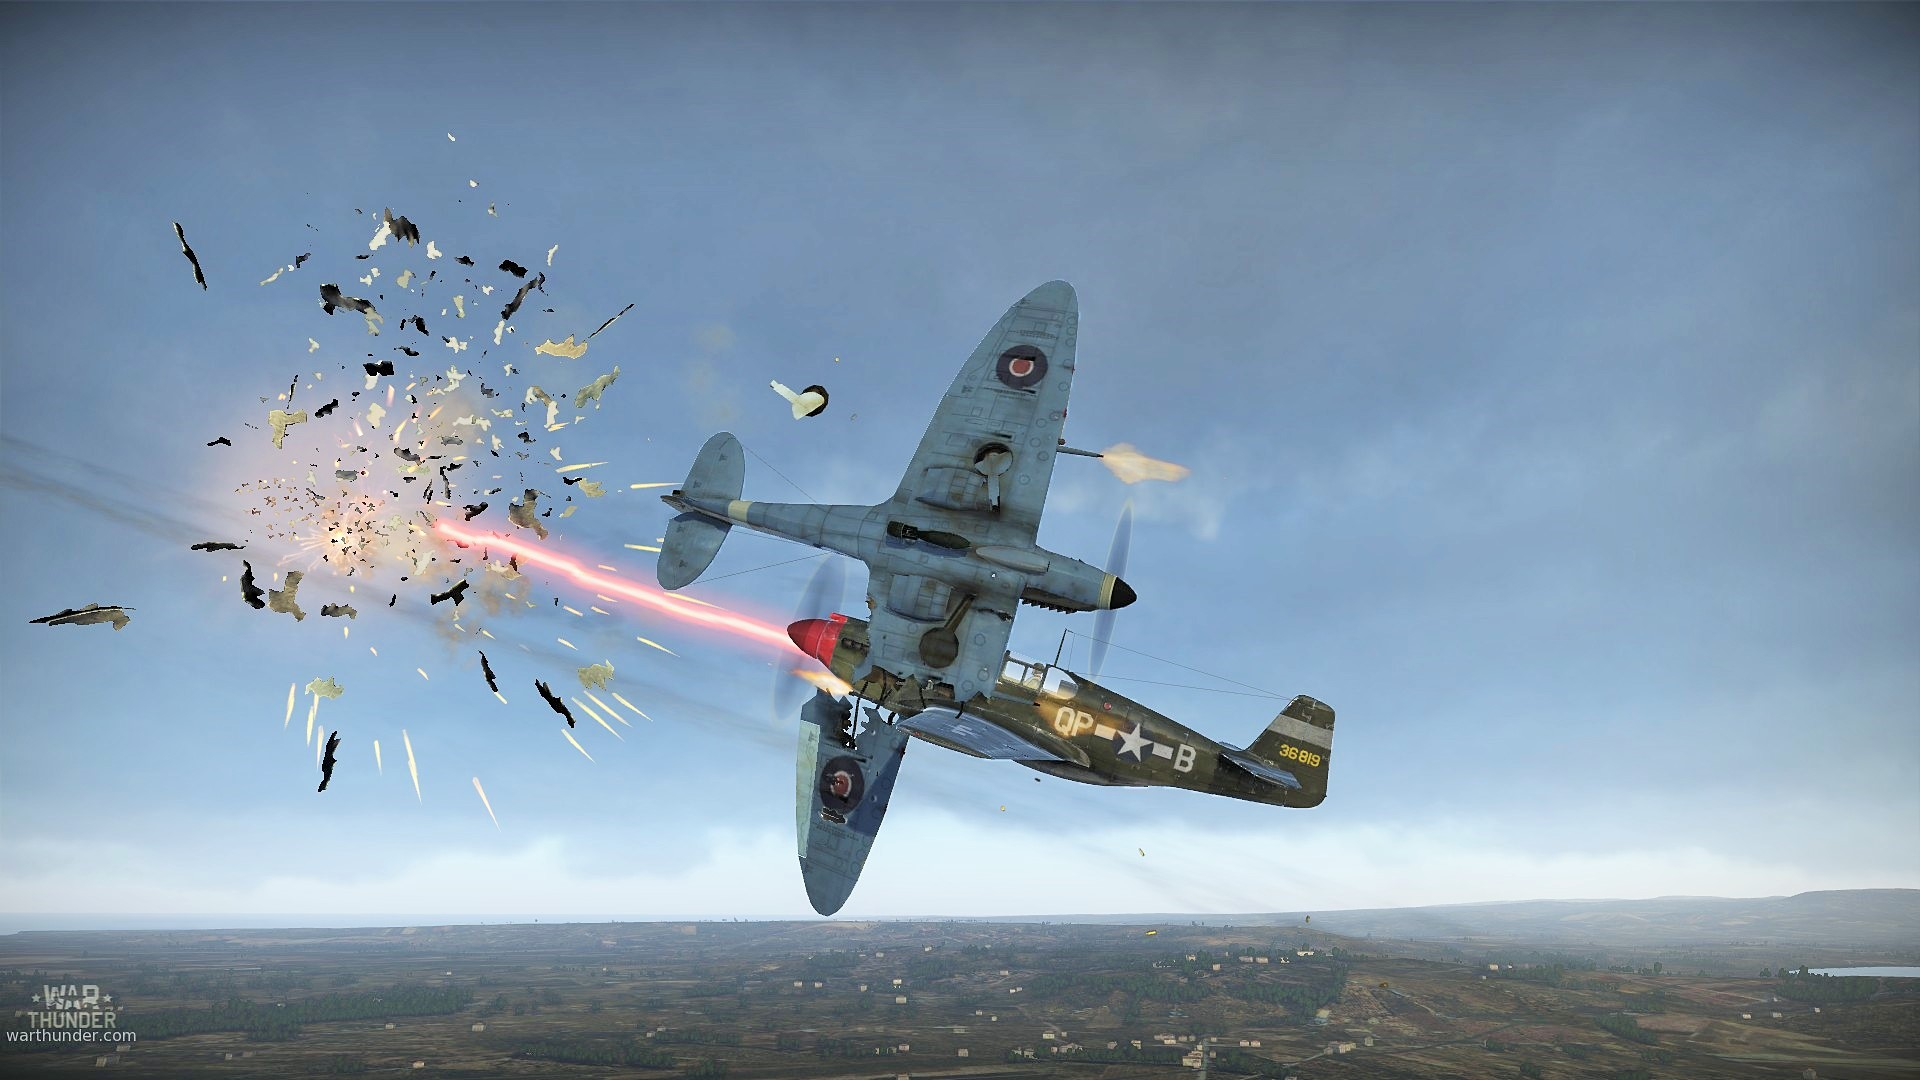 War thunder close call (8)